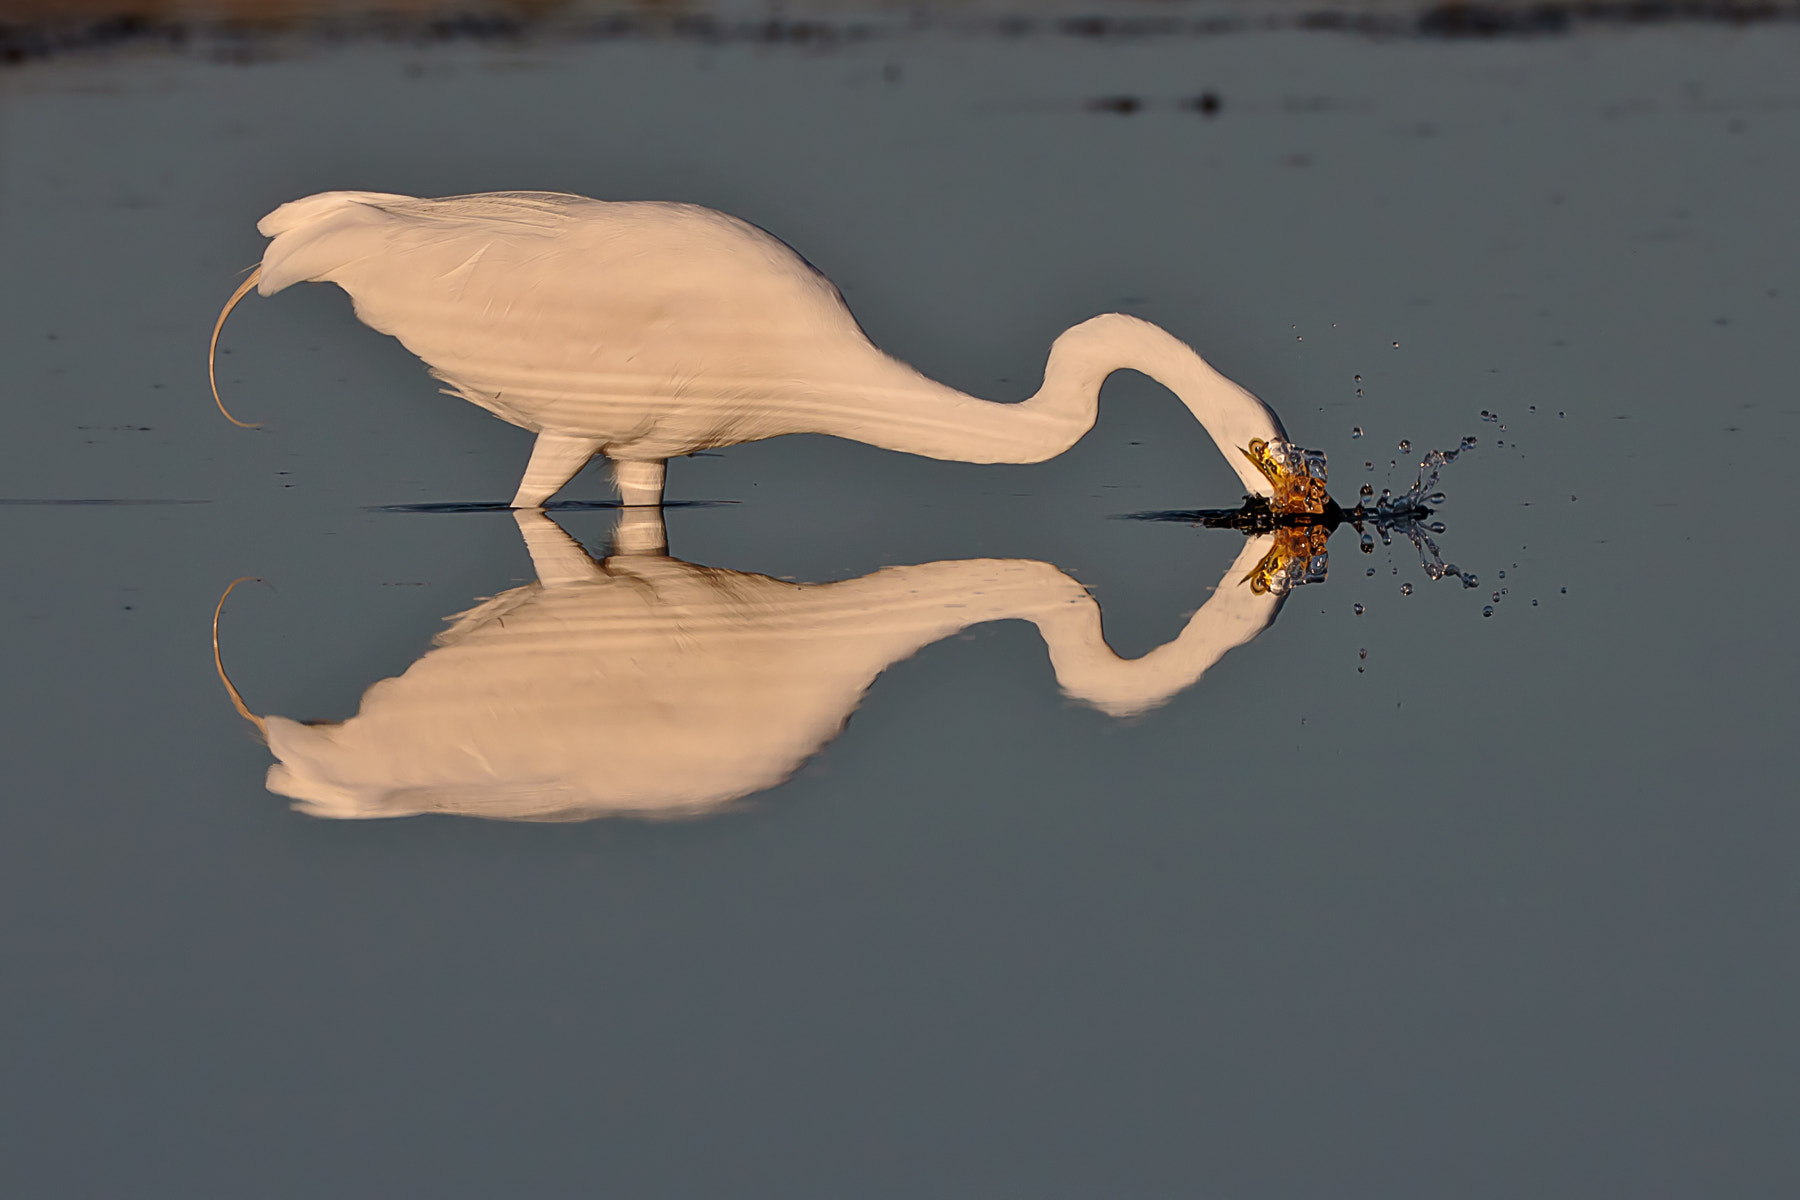 Photograph Mirrored Strike by Scott Evers on 500px